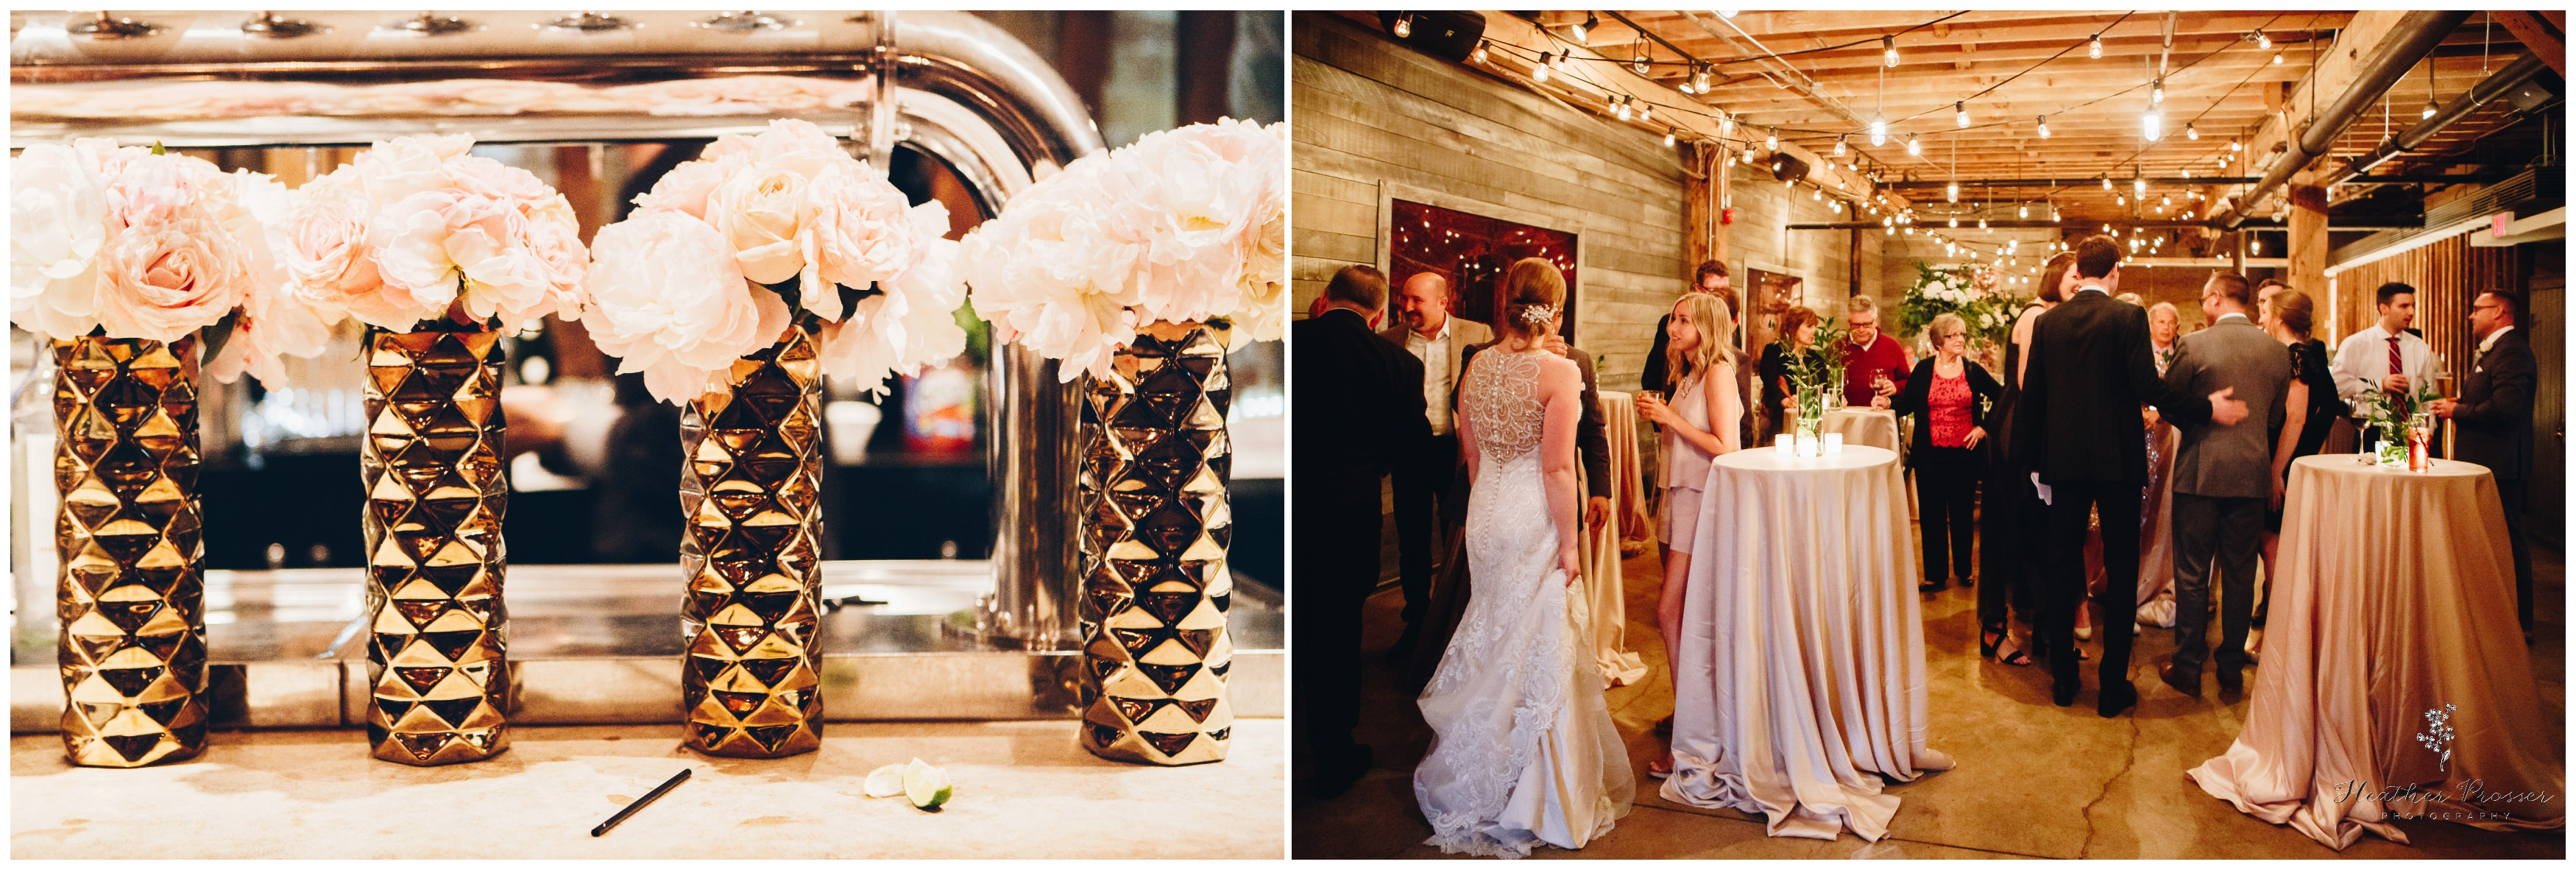 Toronto Distillery District Wedding_2594.jpg